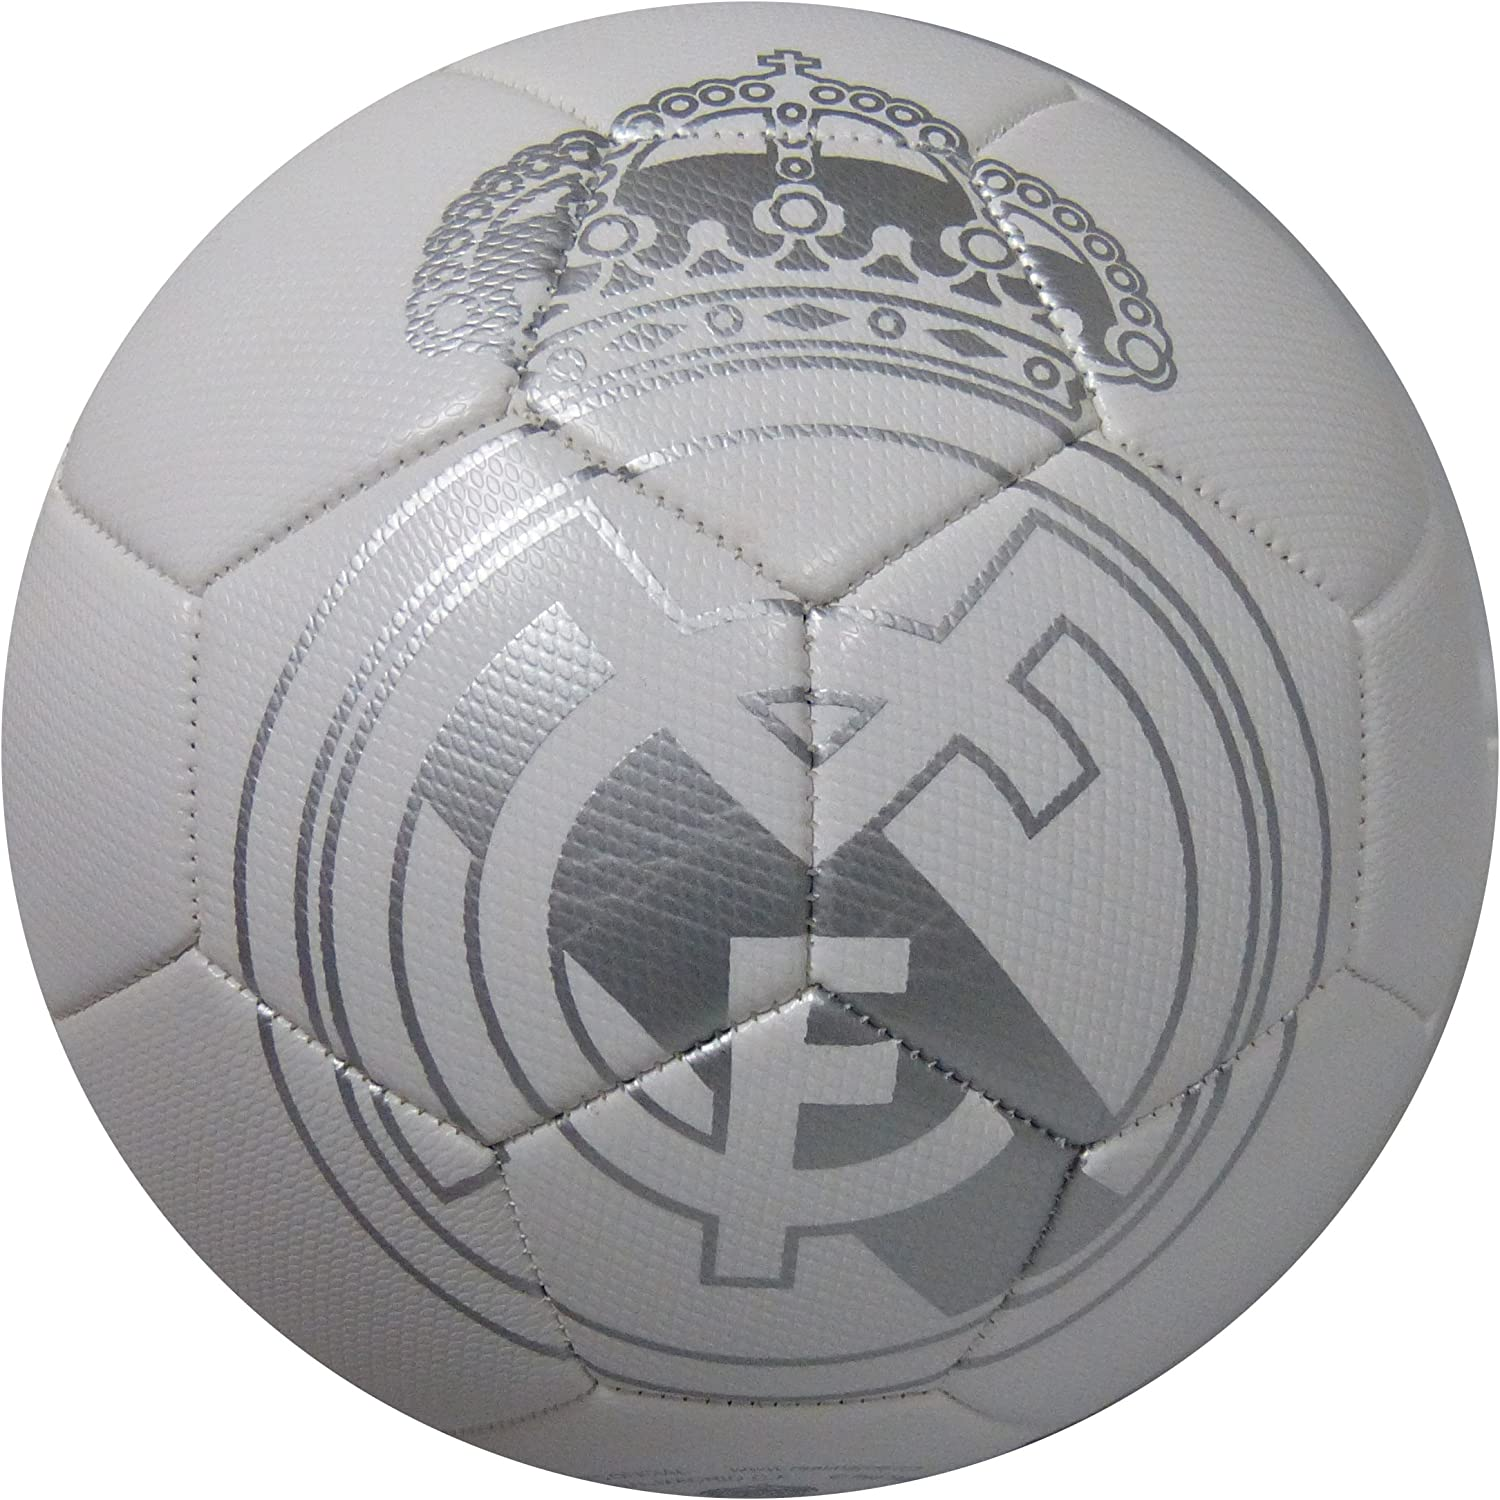 Balon Oficial REAL MADRID Talla Size 5 Blanco Plata: Amazon.es ...